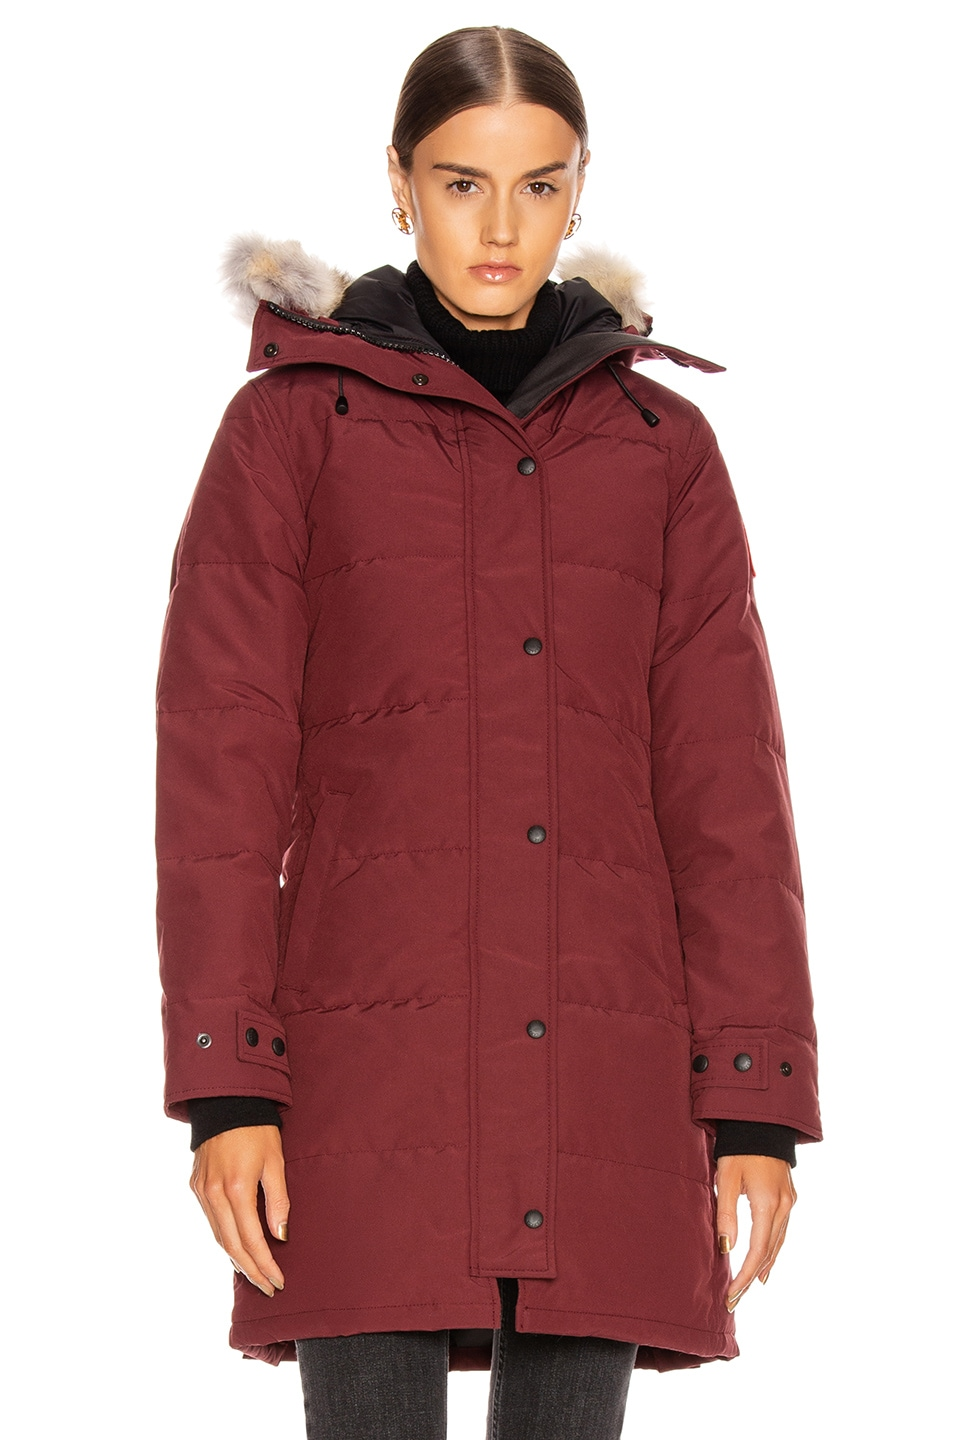 Image 2 of Canada Goose Shelburne Parka with Coyote Fur in Elderberry